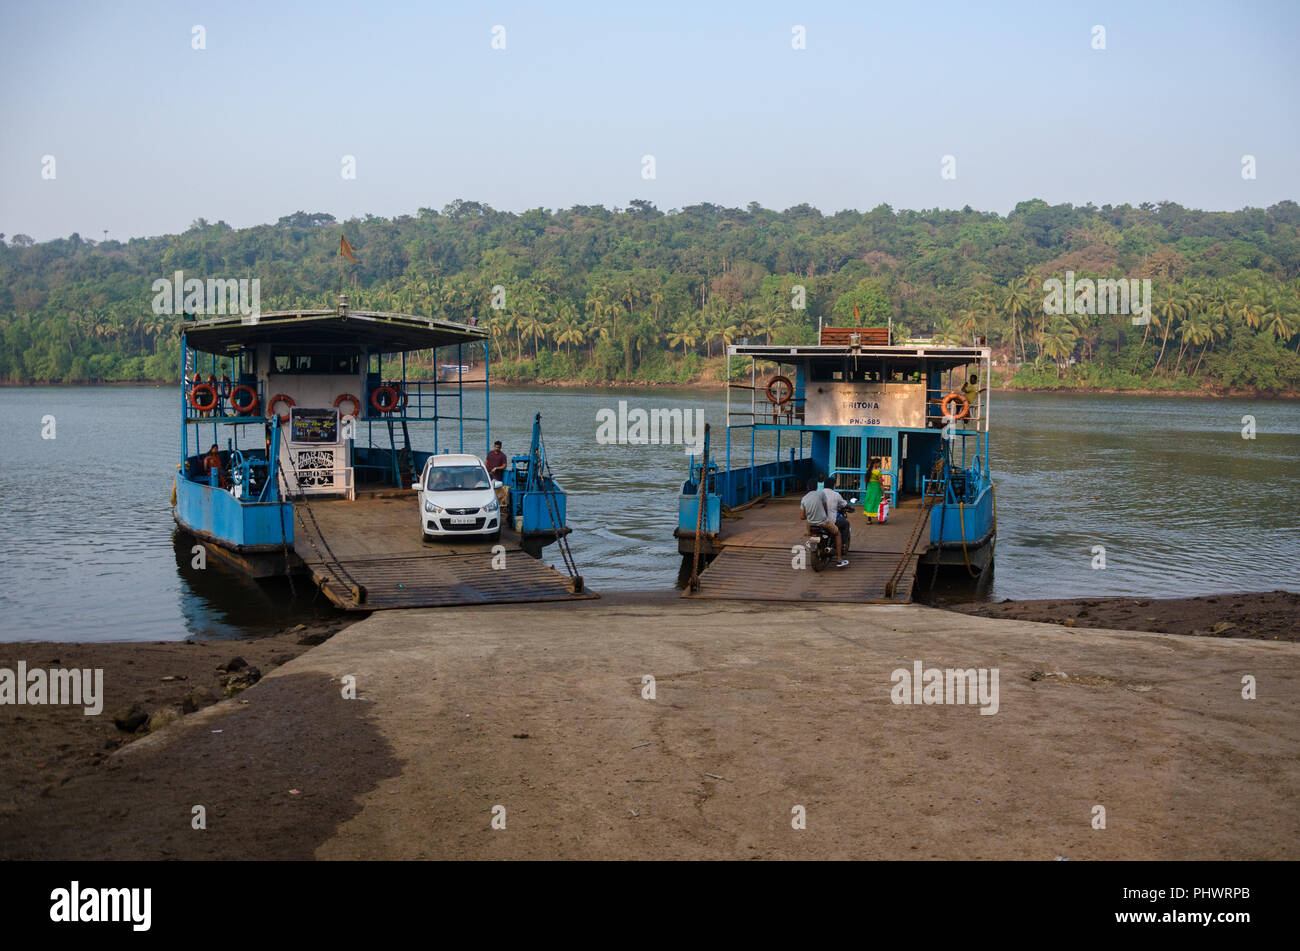 The Volvoi - Surla and Volvoi - Maina FerryBoats waiting side by side at Volvoi Ferry Terminal, Savoi-Verem, Goa, India - Stock Image